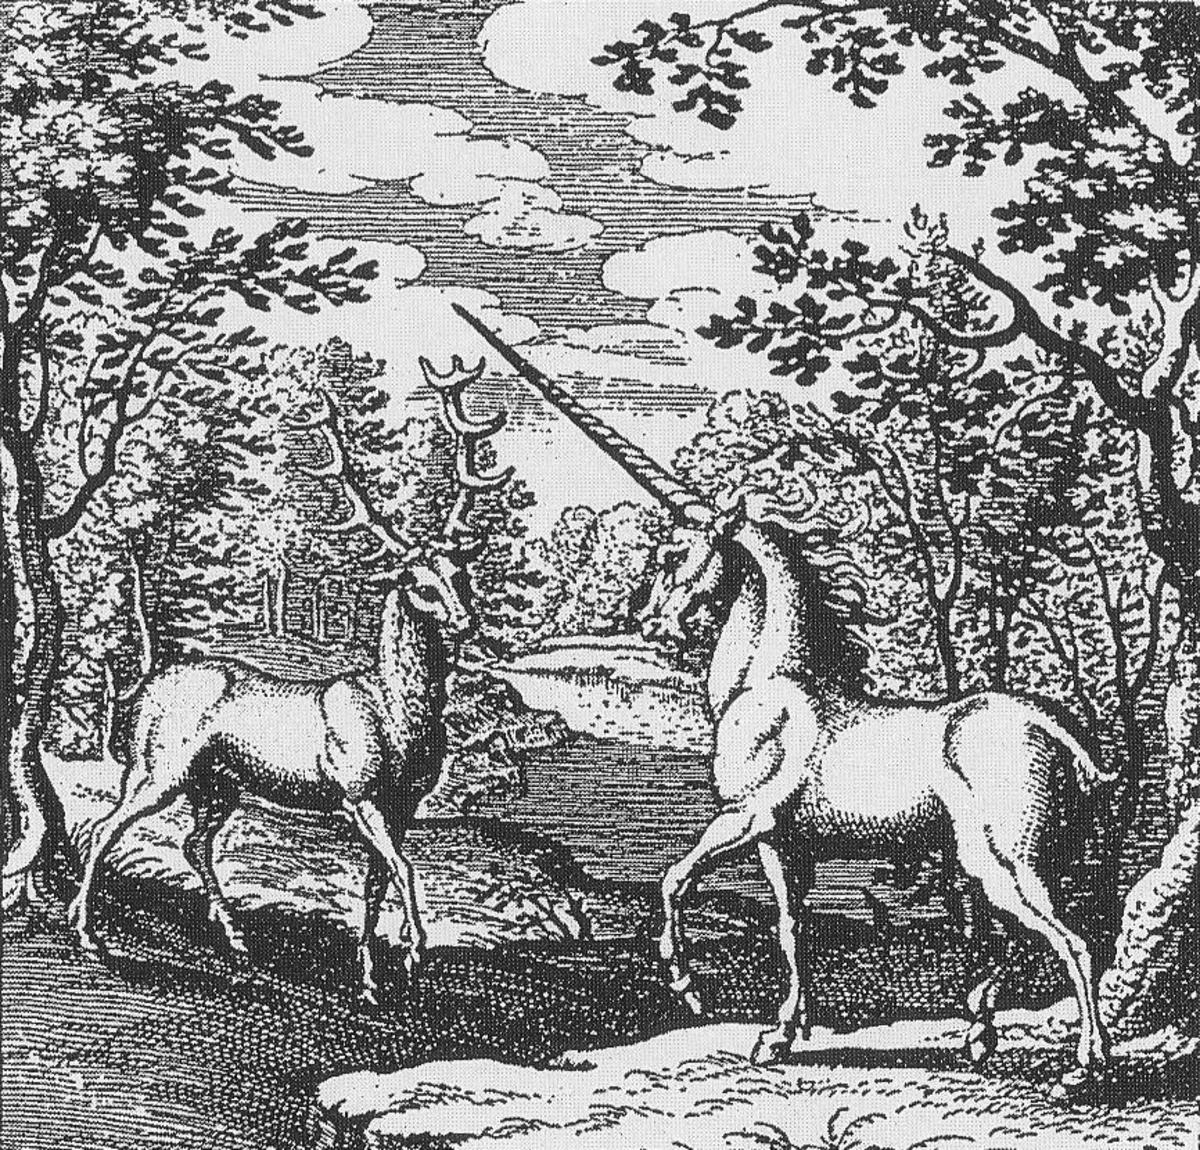 Licorne et cerfRed Deer and Unicorn in a forest - Alchemic engraving - Lambspring, De lapide philosophico figurae et emblemata, figure III, In the Body there is Soul and Spirit; By Lambsprinck - graveur inconnu (Trait alchimique : De Lapide philoso